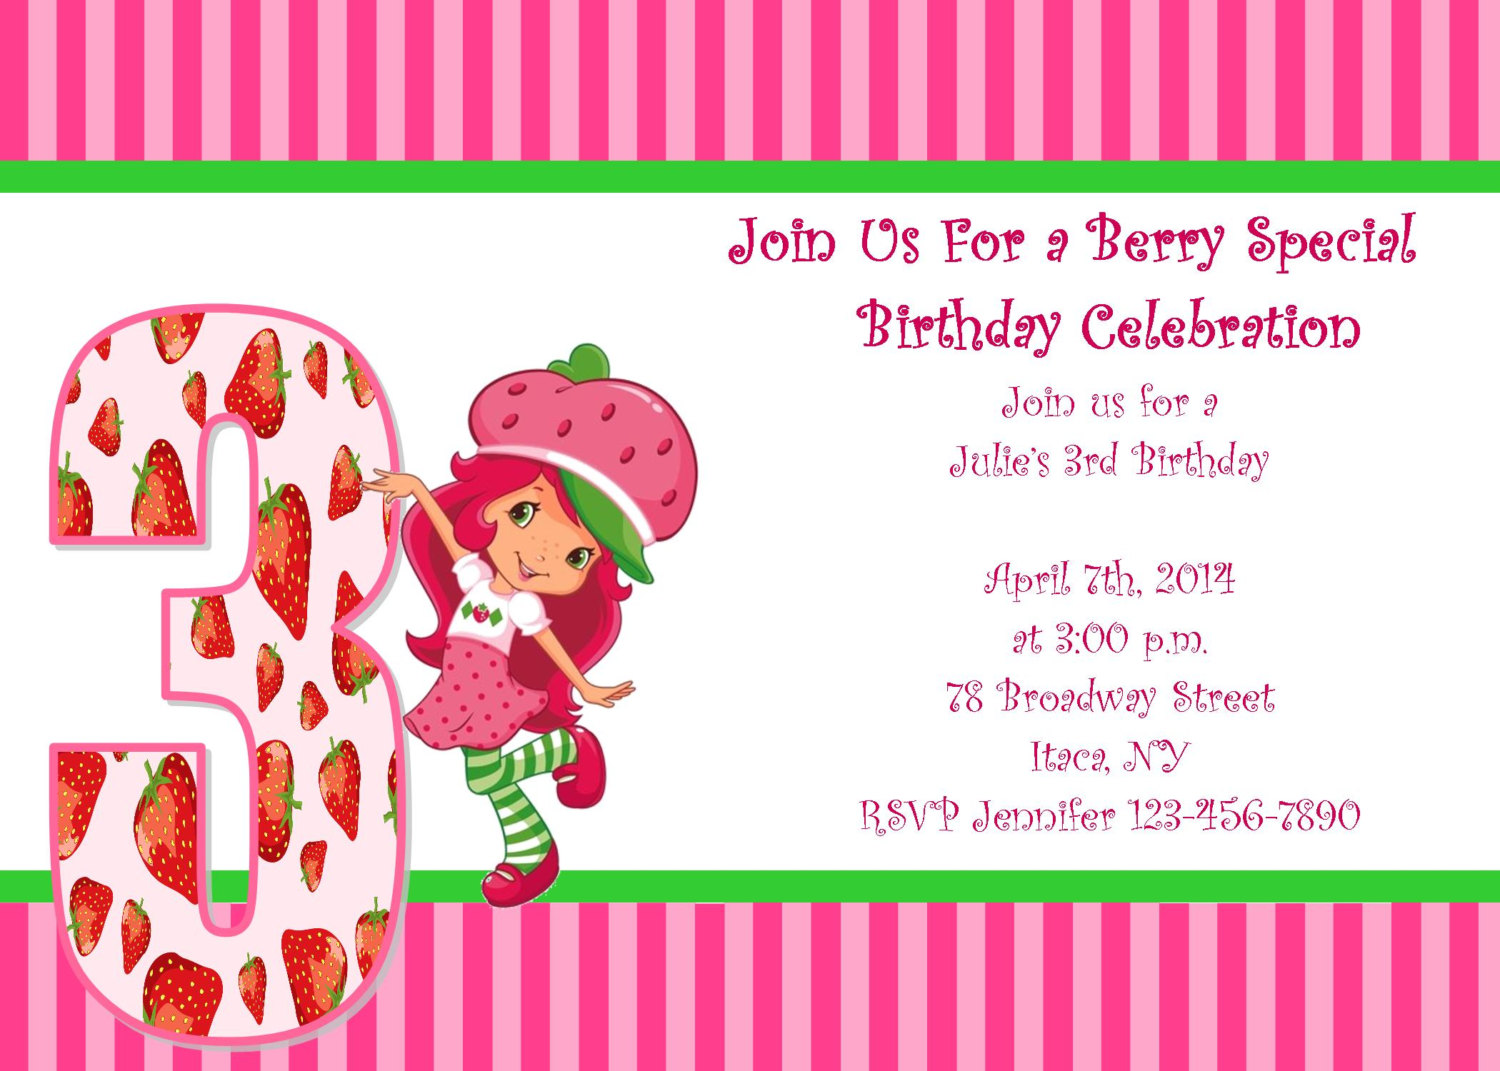 Strawberry Shortcake Invites is nice invitations ideas